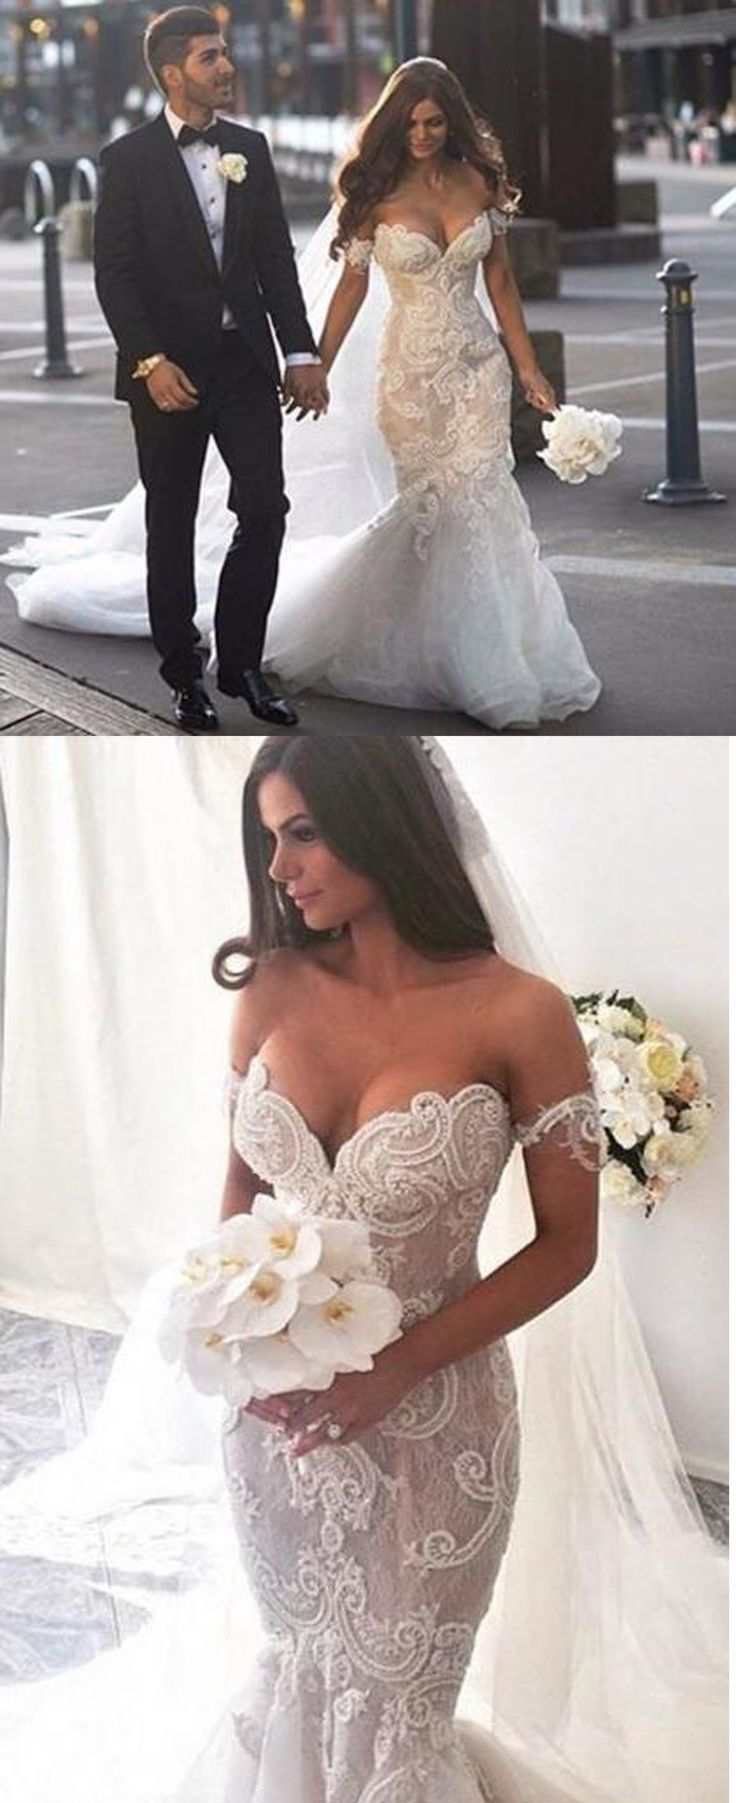 Beach wedding dresses mermaid style  vintage v neck lace boho style wedding dresses  Love  Pinterest